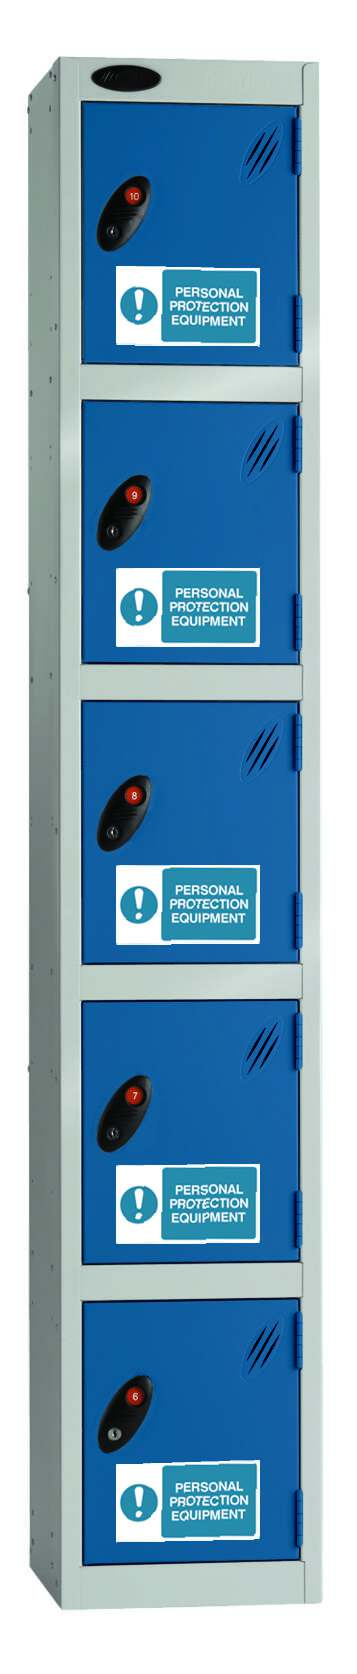 Probe PPE Lockers - Five Compartment